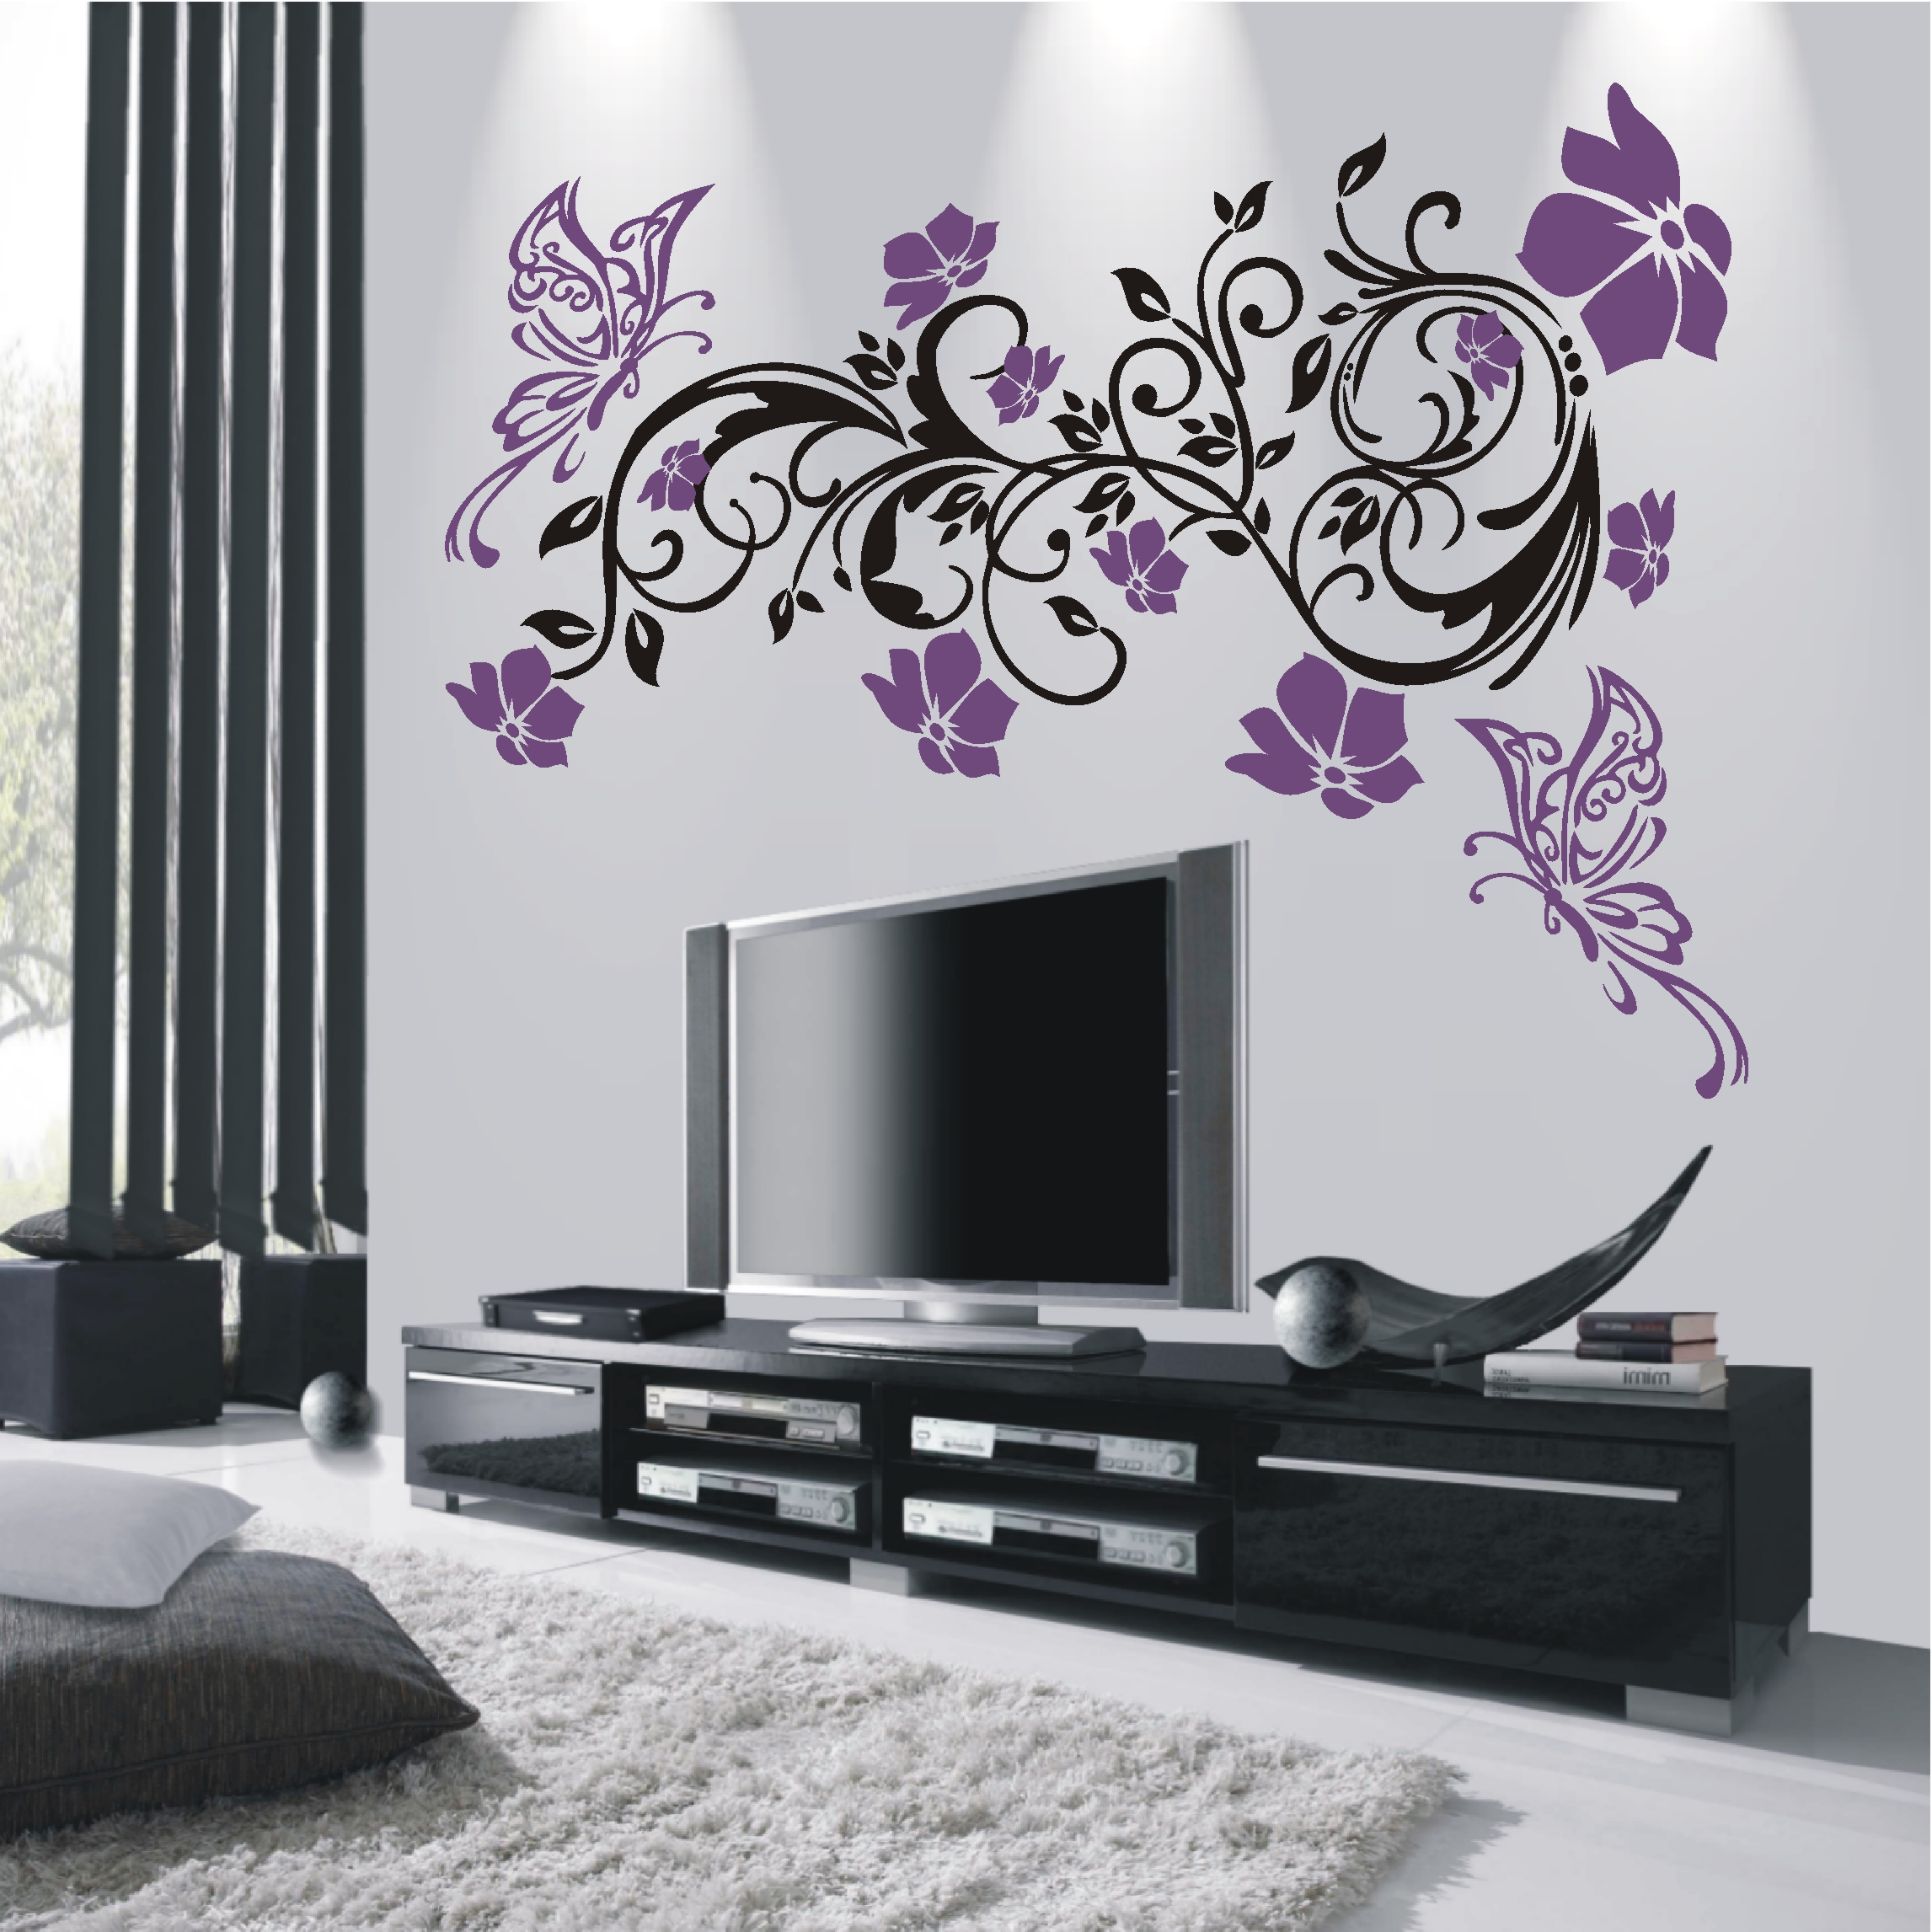 deko shop wandtattoo hibiskus ranke 2 farbig deko shop. Black Bedroom Furniture Sets. Home Design Ideas